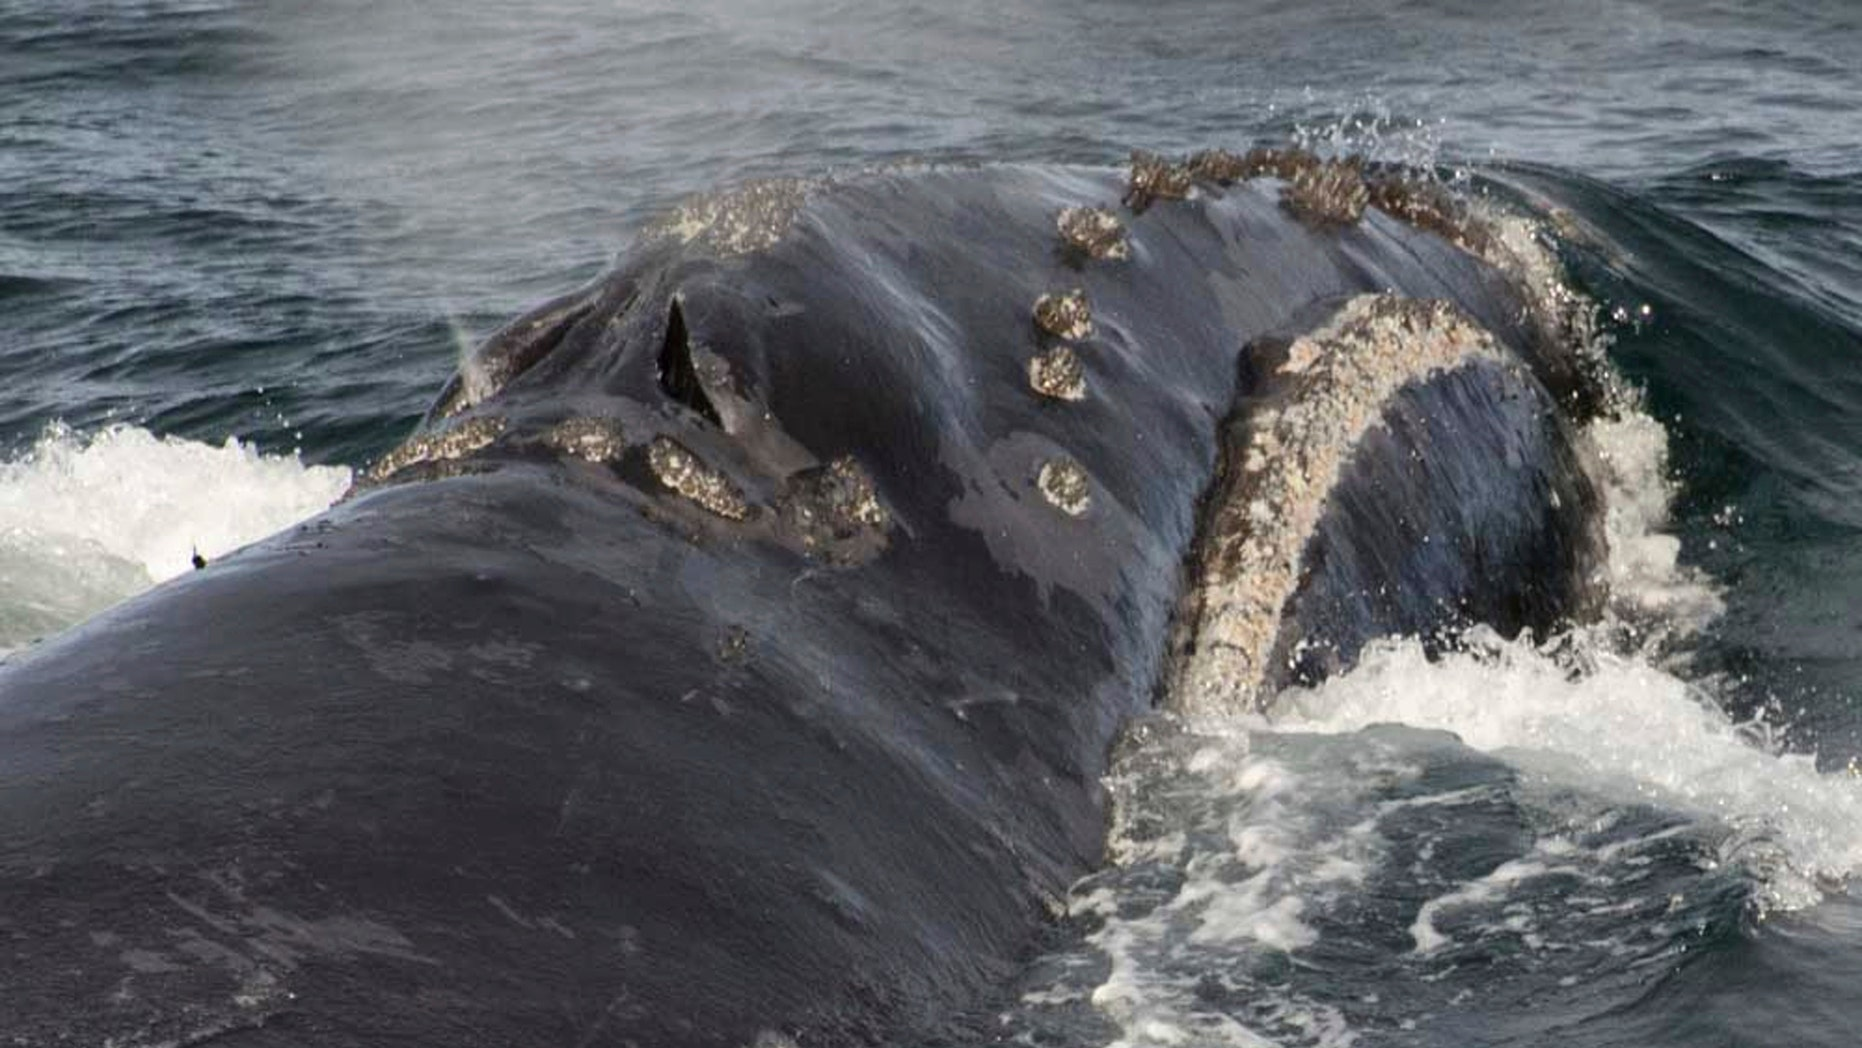 In this Sunday, Aug. 6, 2017 photo provided by NOAA Fisheries a North Pacific right whale swims in the Bering Sea west of Bristol Bay. Jessica Crance, a research biologist with the National Oceanic and Atmospheric Administration, was able to use acoustic equipment to find and photograph two of the extremely endangered whales and obtain a biopsy sample from one. NOAA estimates only 30 to 50 eastern stock North Pacific right whales still remain. (NOAA Fisheries via AP)